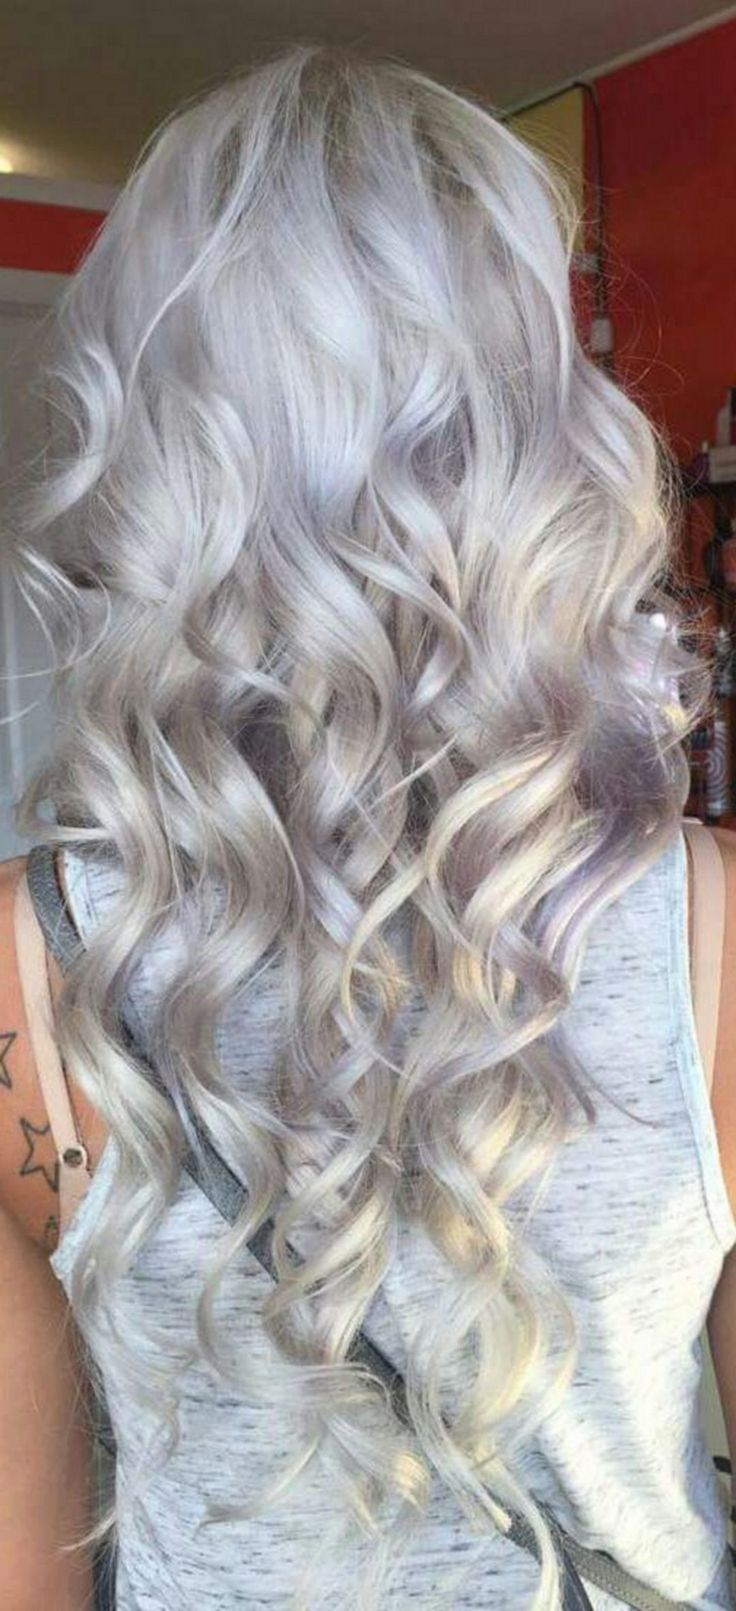 Adorable 30+ Silver Hair Color Ideas For Women Look More Beautiful https://www.tukuoke.com/30-silver-hair-color-ideas-for-women-look-more-beautiful-15190